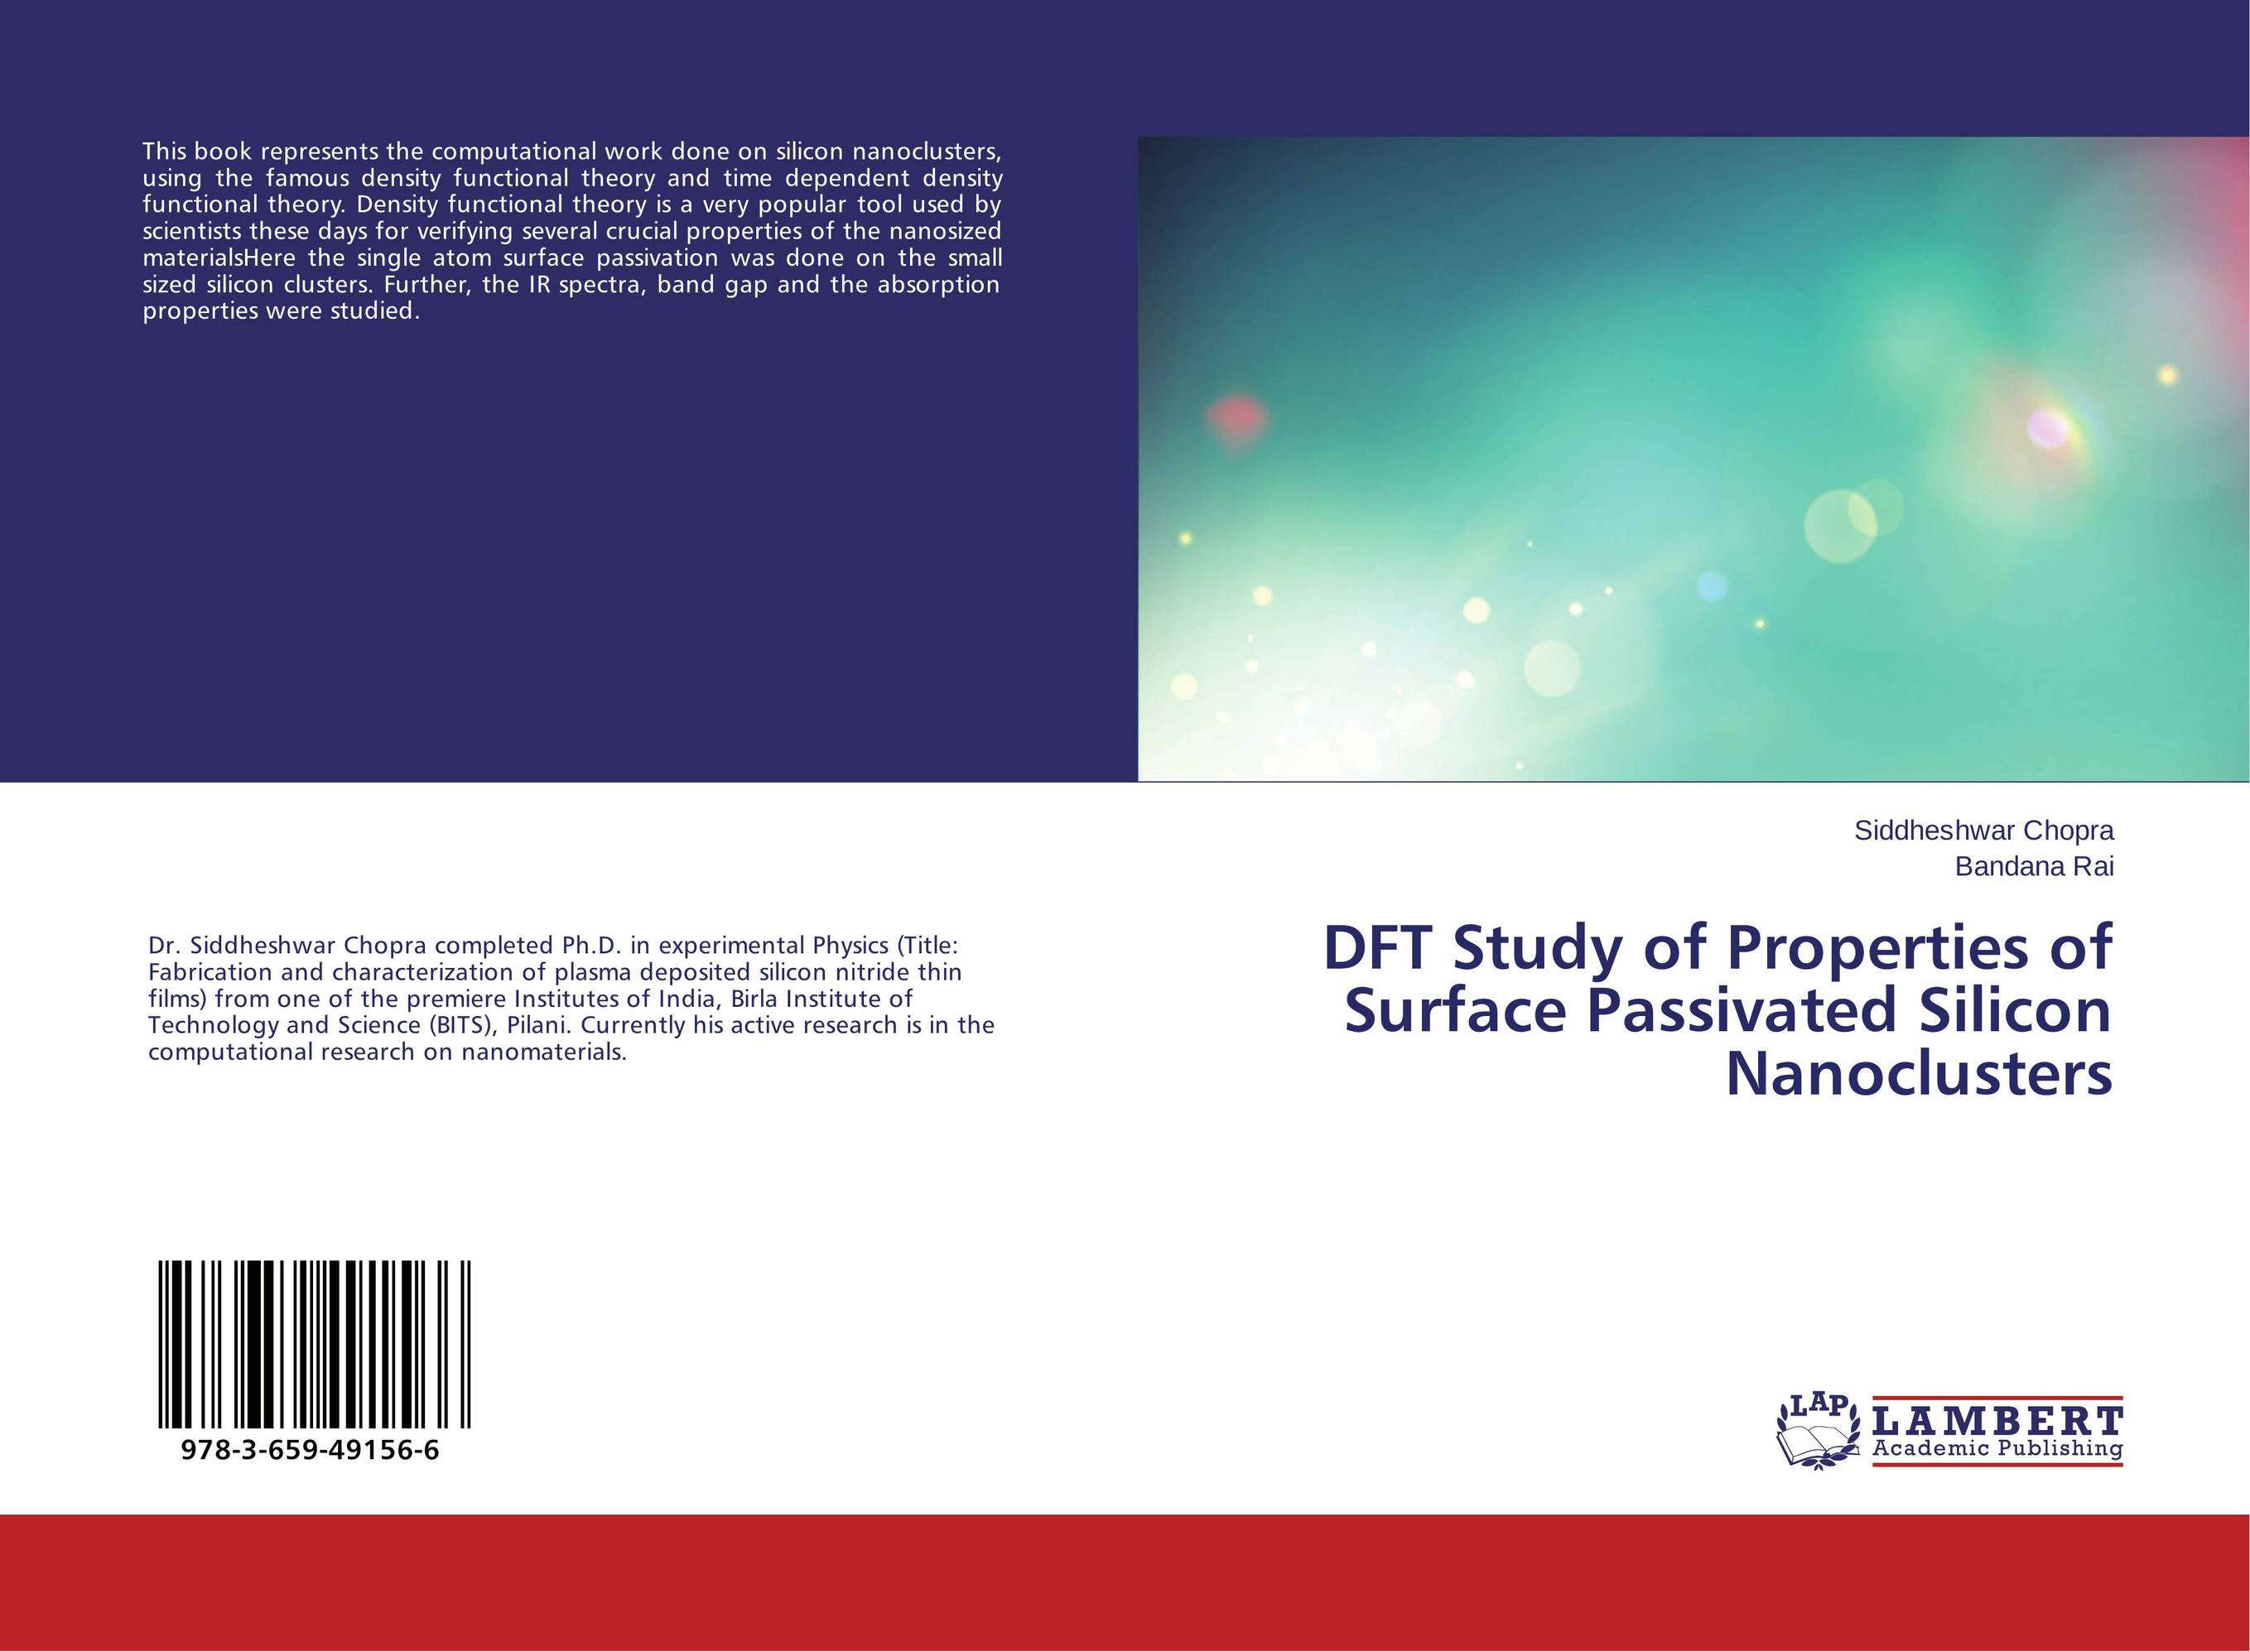 DFT Study of Properties of Surface Passivated Silicon Nanoclusters epidemiological study on the functional gastrointestinal disorders